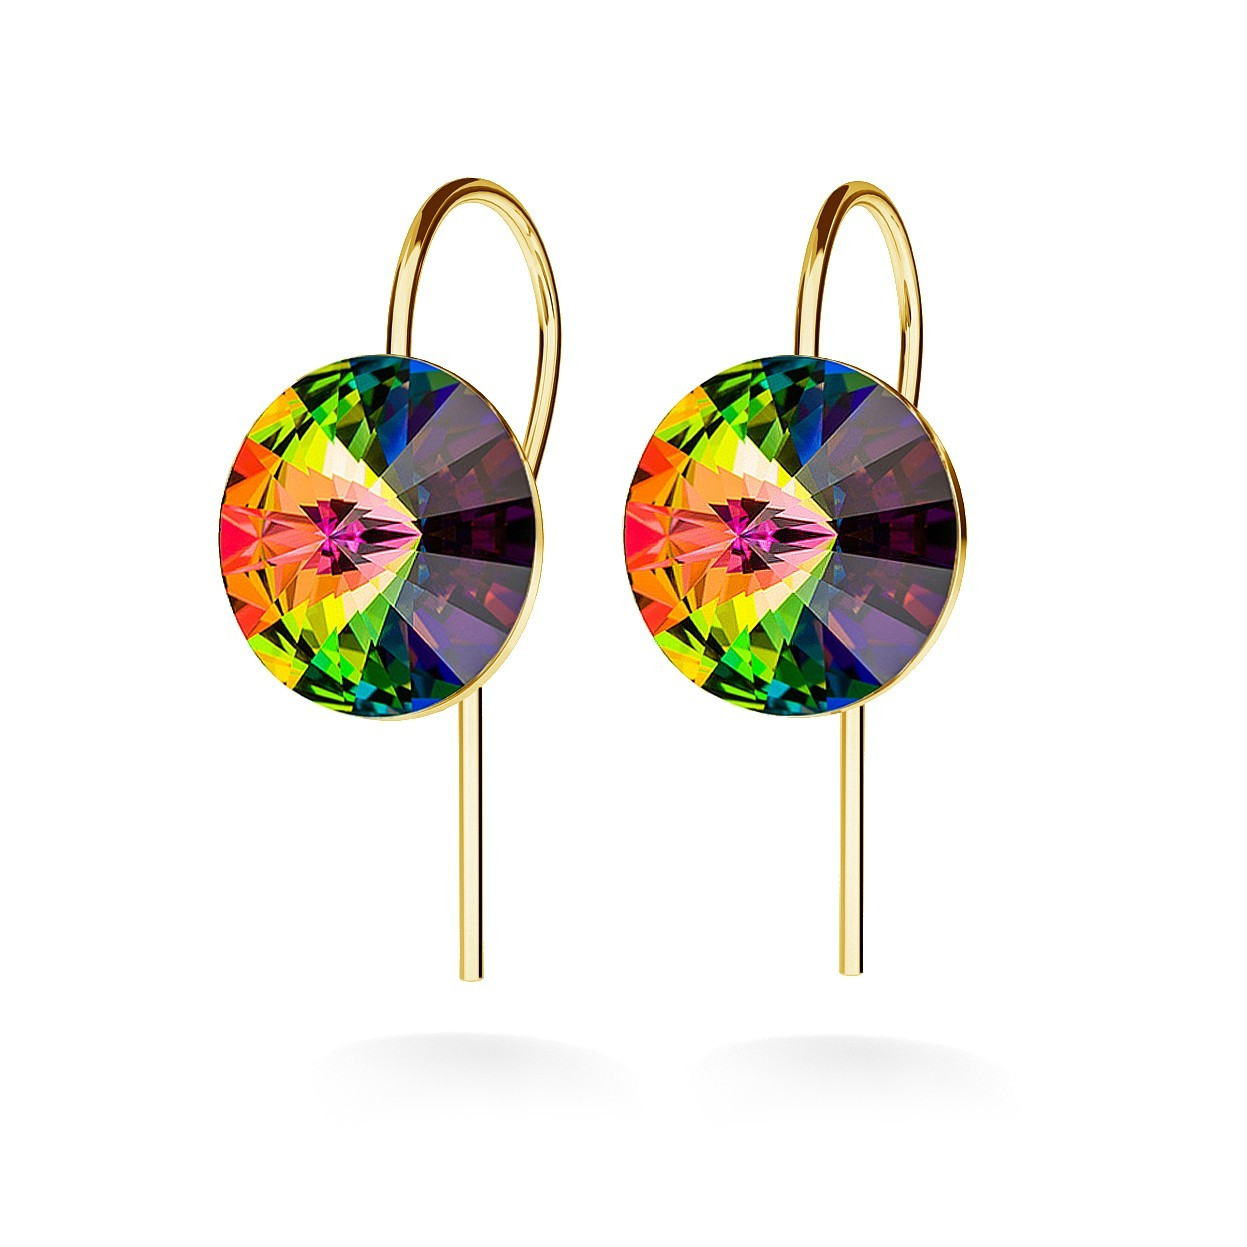 RIVOLI 10MM EARRINGS, SWAROVSKI